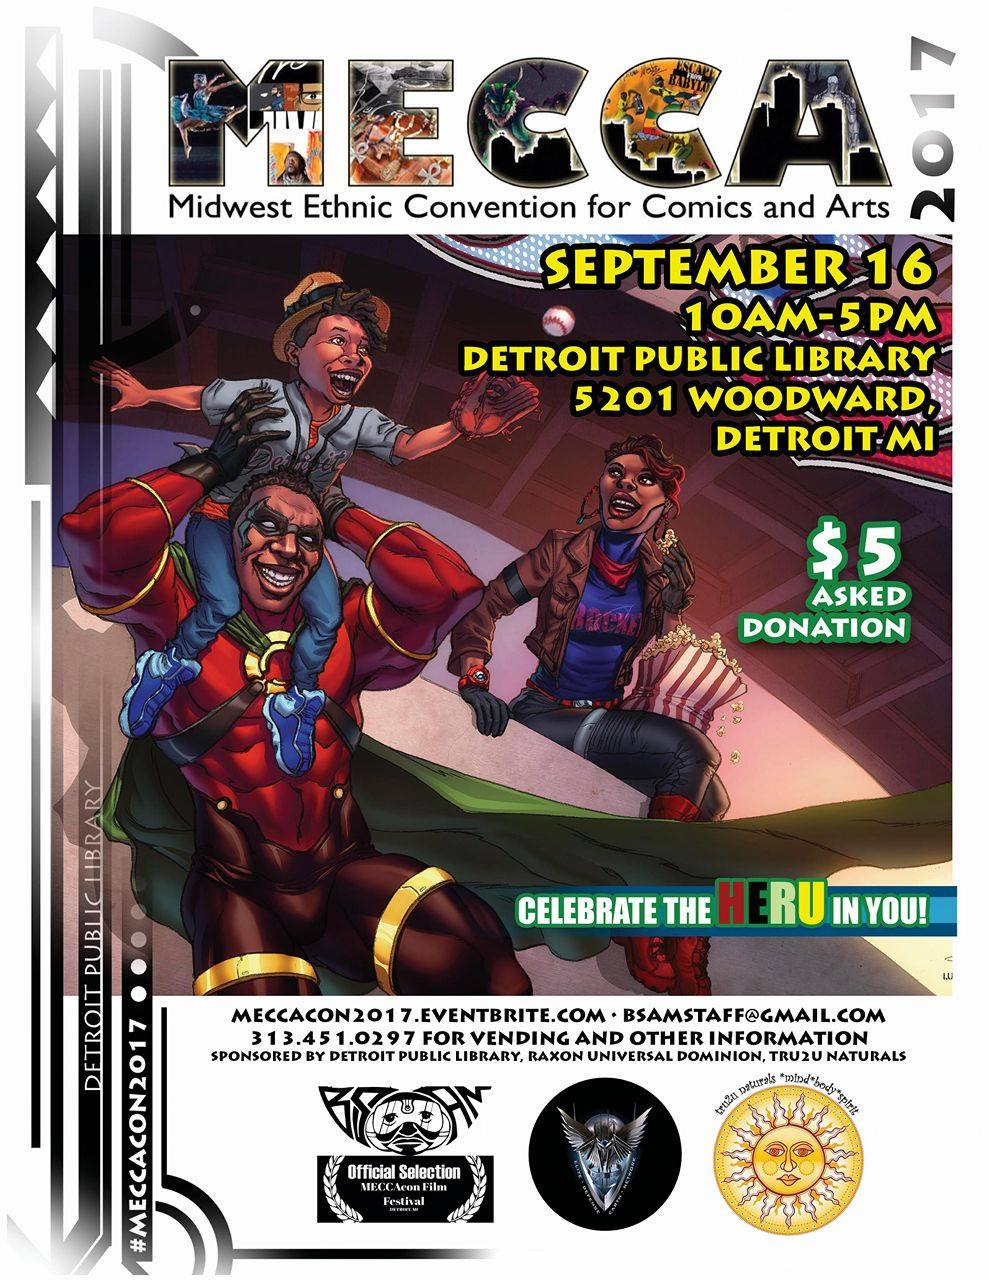 The Midwest Ethnic Convention for Comics and Art , or MECCAcon, is an annual convention which features young comic and film creators from diverse backgrounds presenting work based on their diverse experiences. The primary mission of MECCAcon is to connect with younger artists and show them that not all heroes look the same, in fact, some look just like them! MECCAcon will highlight comics, international/independent film, afrofuturism, science fiction, steampunk, fine art, music, graffiti, dj artists, handmade artisans, african belly dance, urban gardening, fashion, african martial arts, and more! On Friday September 15th, one day prior to the main convention happening at the Detroit Public Library, stop in at Vault of Midnight in Detroit for an exclusive signing with some of the most prominent comic creators from MECCAcon, including:  4:00 pm: Miguel Blanco and Javier Cruz Minnick 5:00 pm: Jahani Kwatre and Keithan Jones 6:00 pm: N. Steven Harris and Will Focus  Do not miss out on the unique experience of meeting these amazing young talents working on some of the most cutting edge comics today!